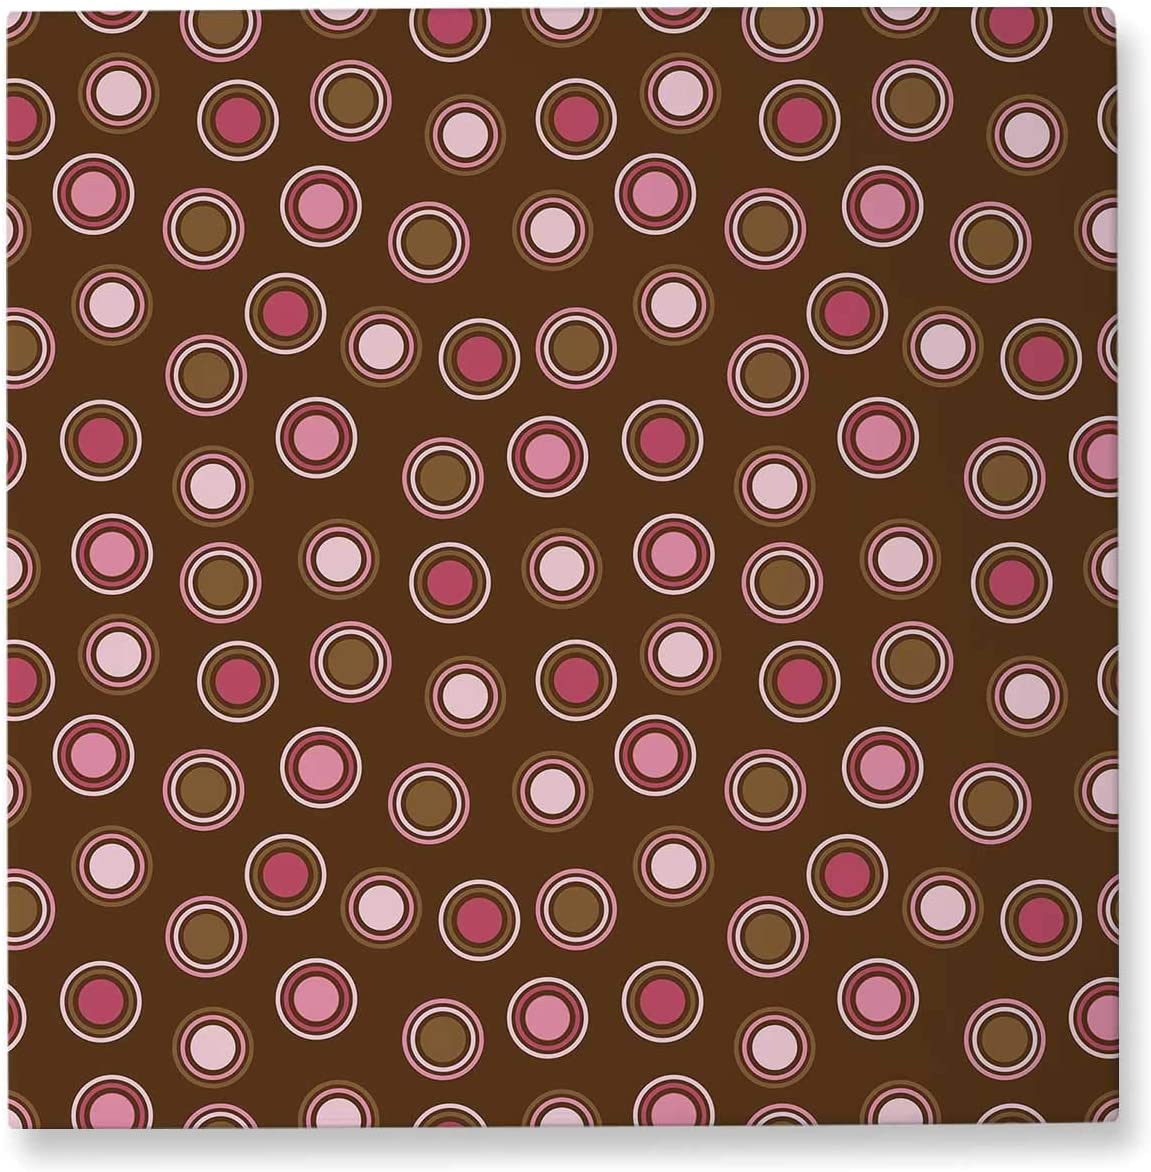 Pummelouty Brown and Polka Dot,Living Room Wall Decor Christmas Pictures for Wall 12x12